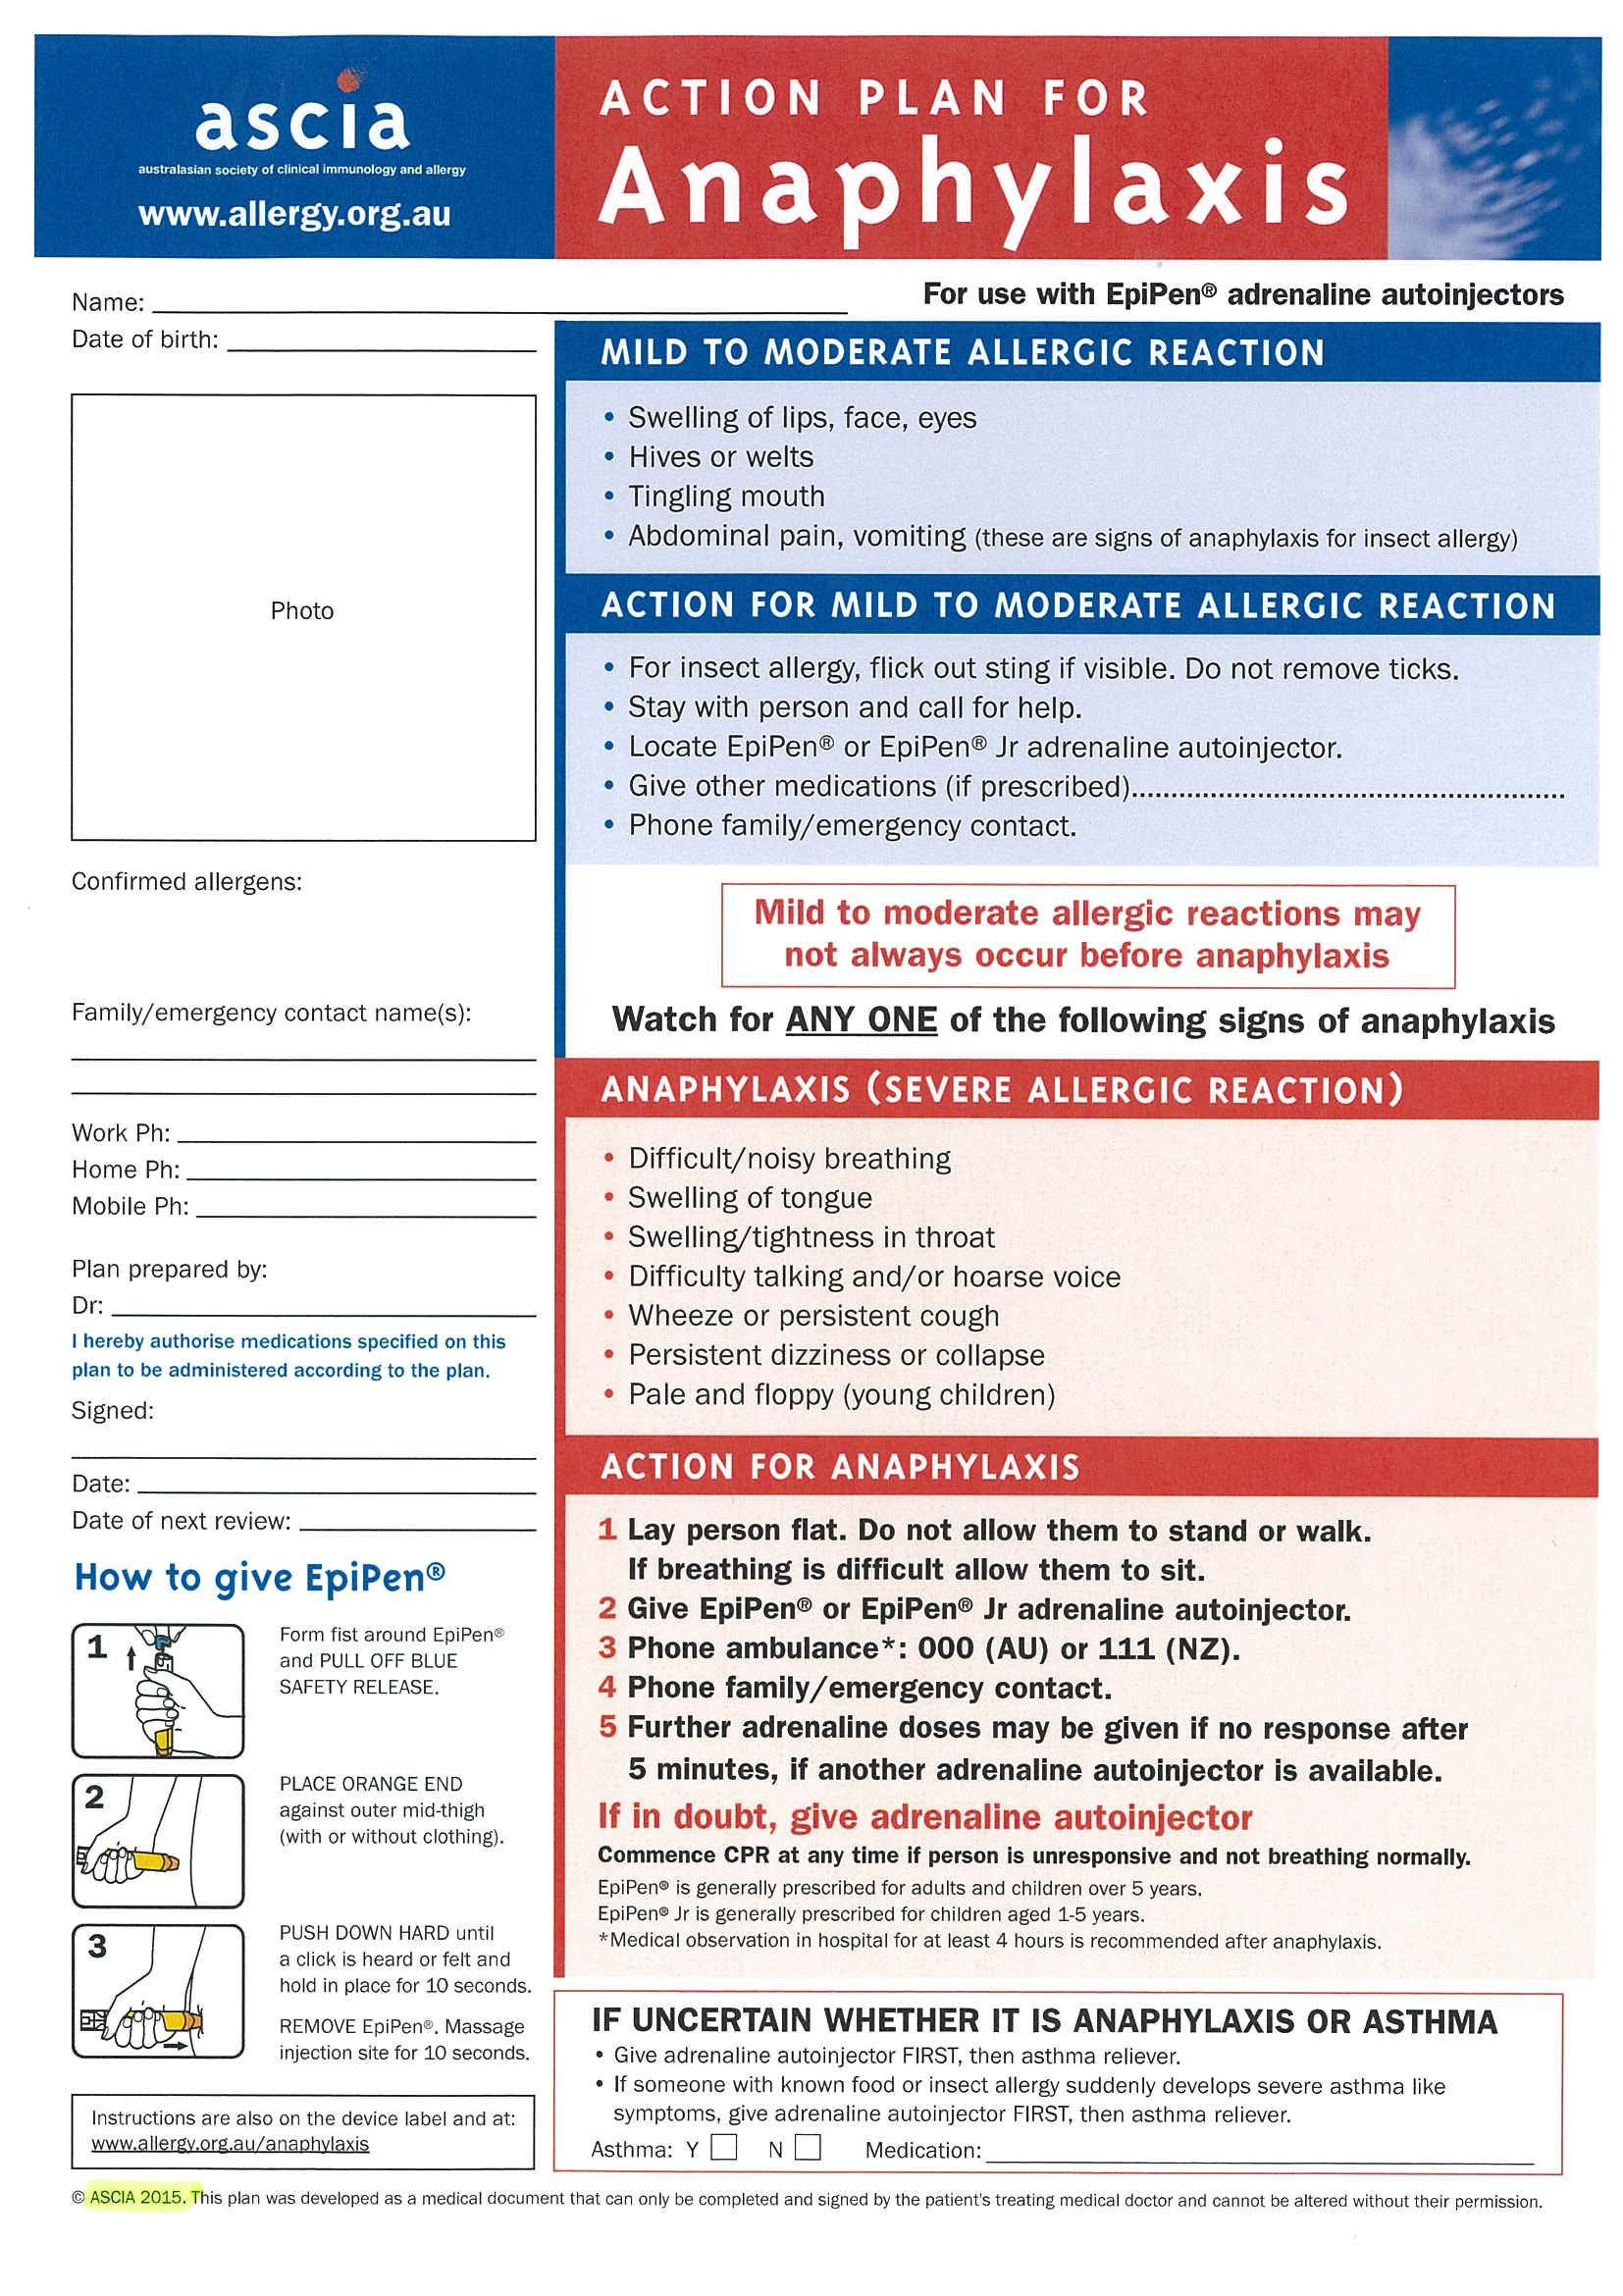 allergy action plan template - allergy action plan template